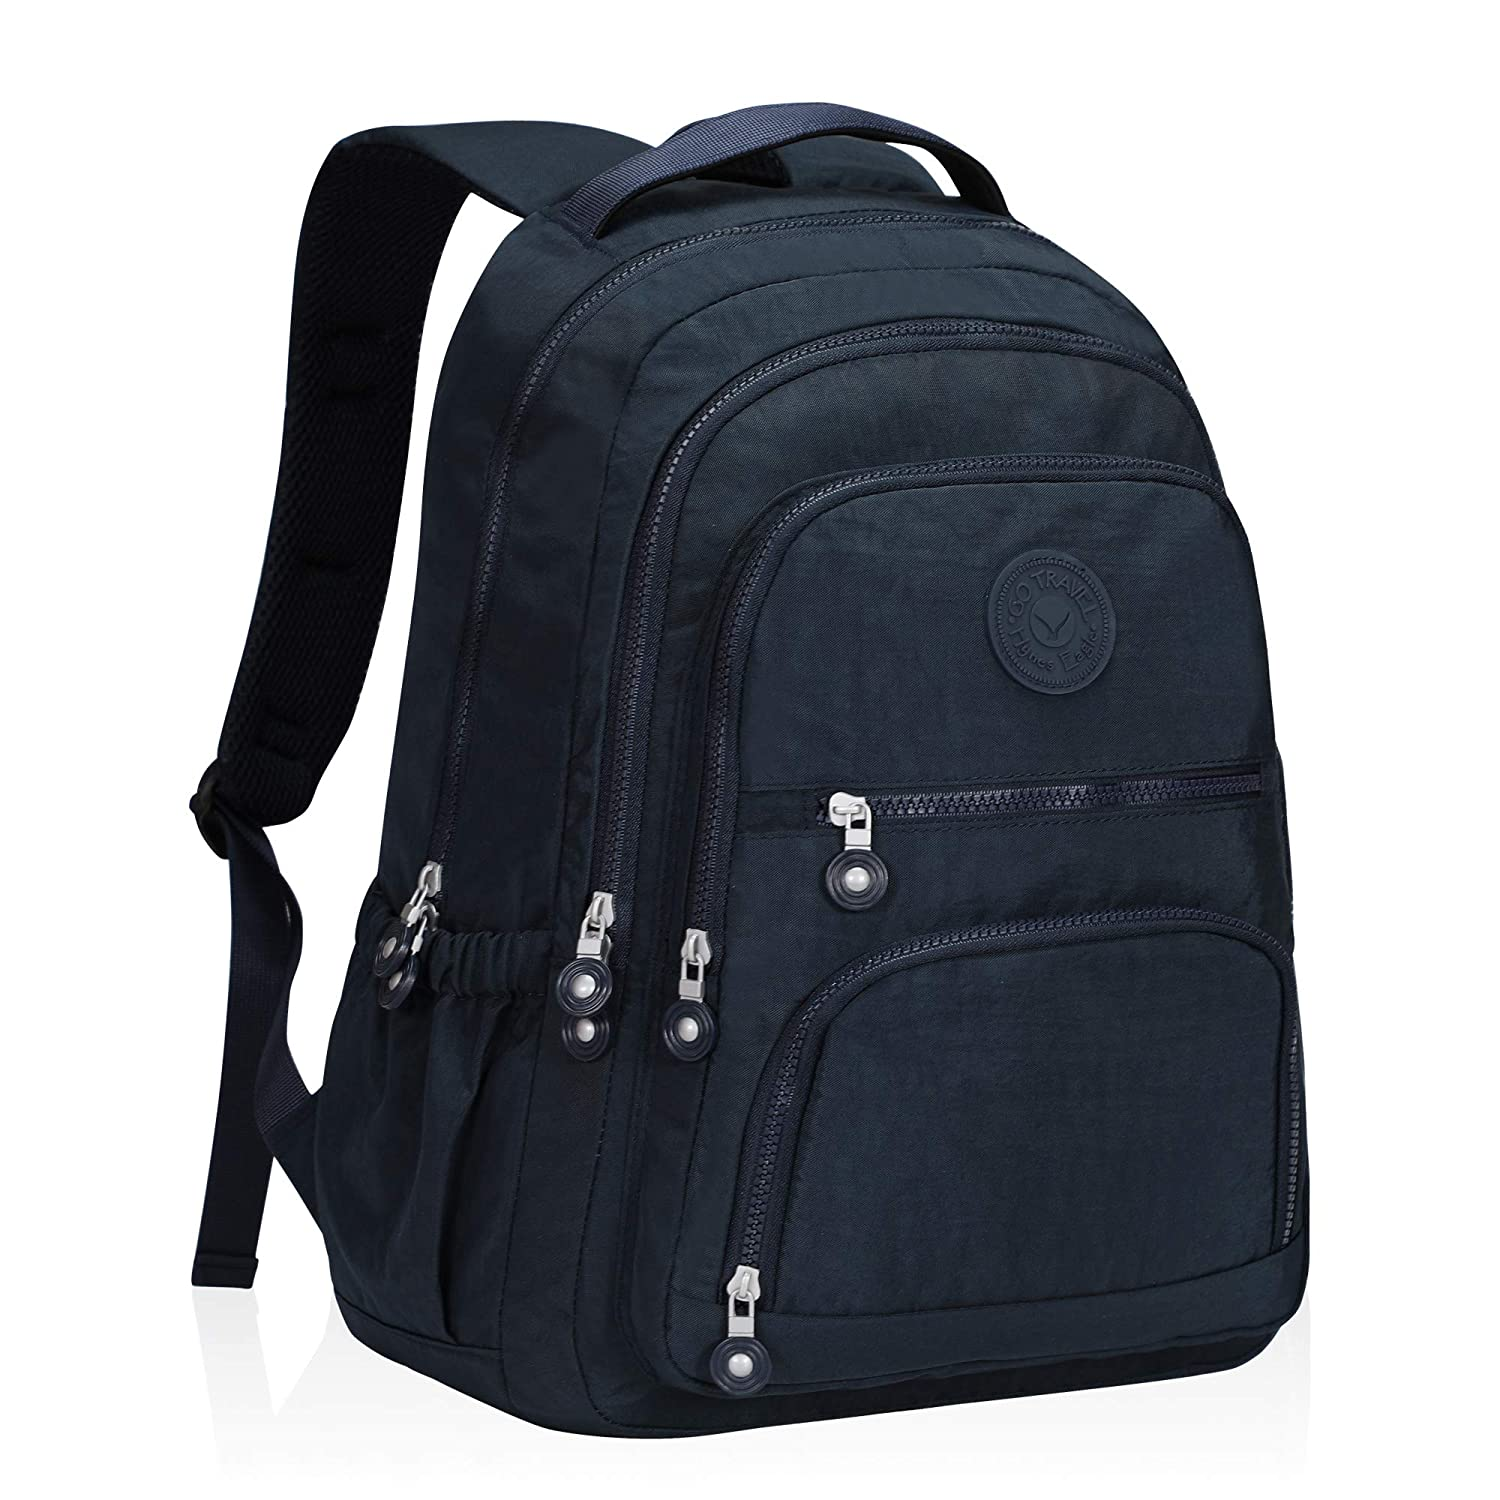 a9fe231c6991 Hynes Eagle School Backpack Student Casual Daypack Laptop Backpack Fits  15.6 inches Navy Blue